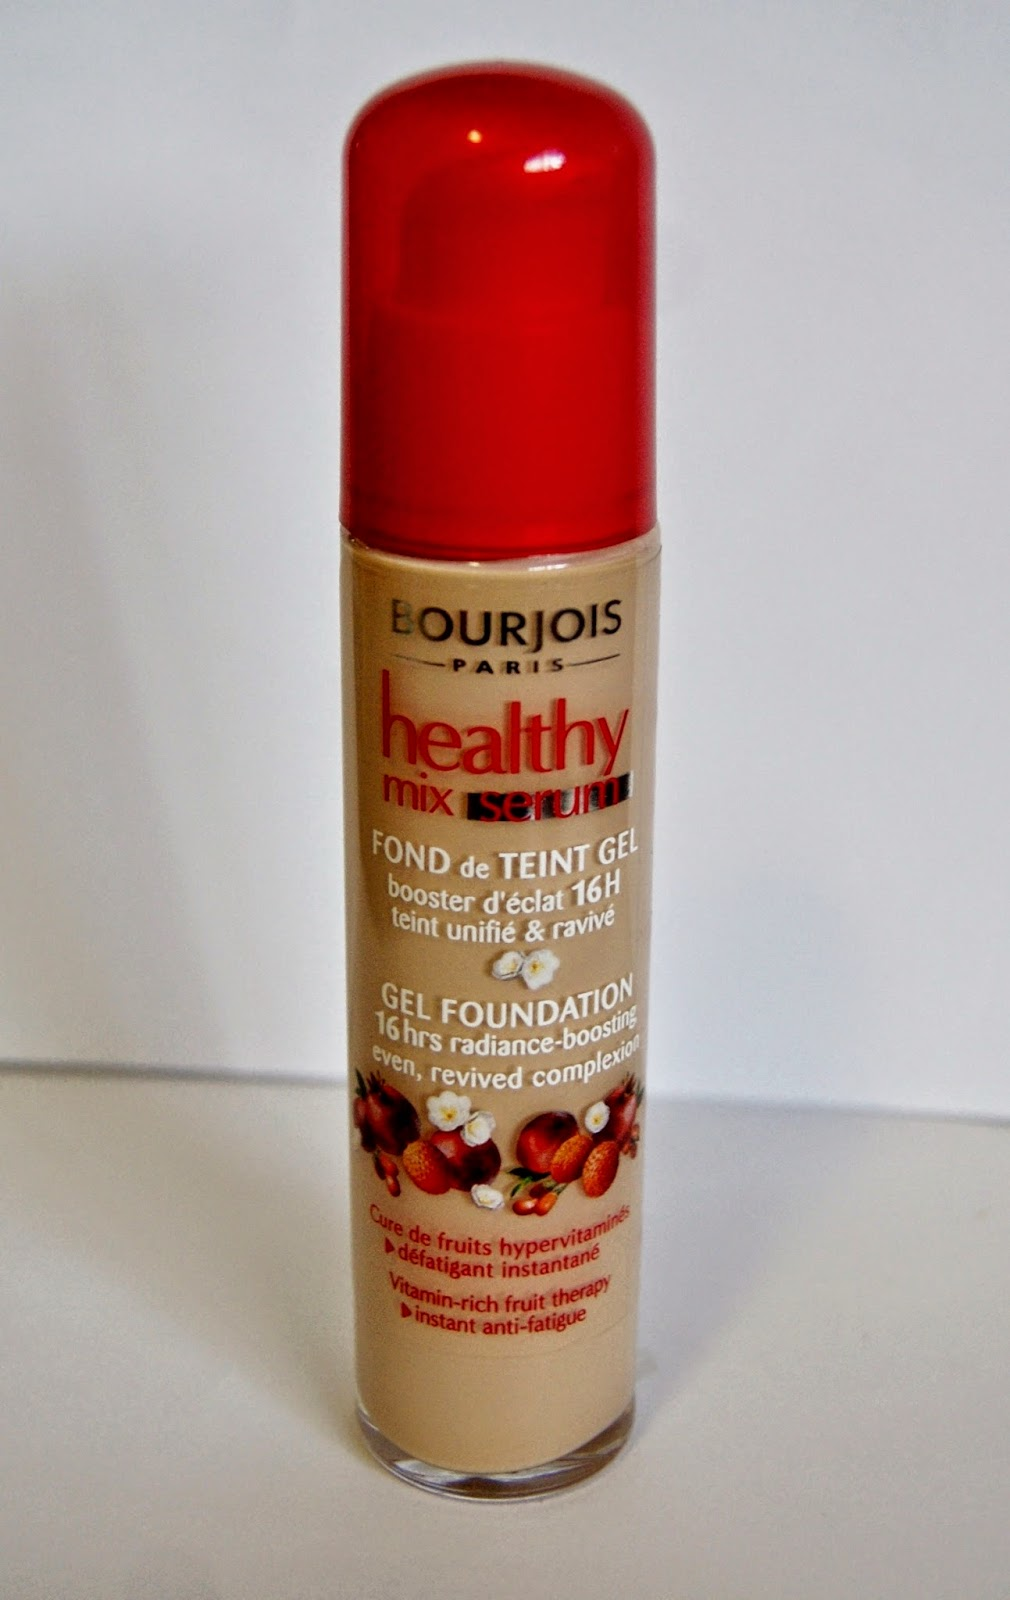 Bourjois Paris Healthy Mix Serum Gel Foundation Beauty Review Make up Melanie.Ps blogger Toronto The Purple Scarf